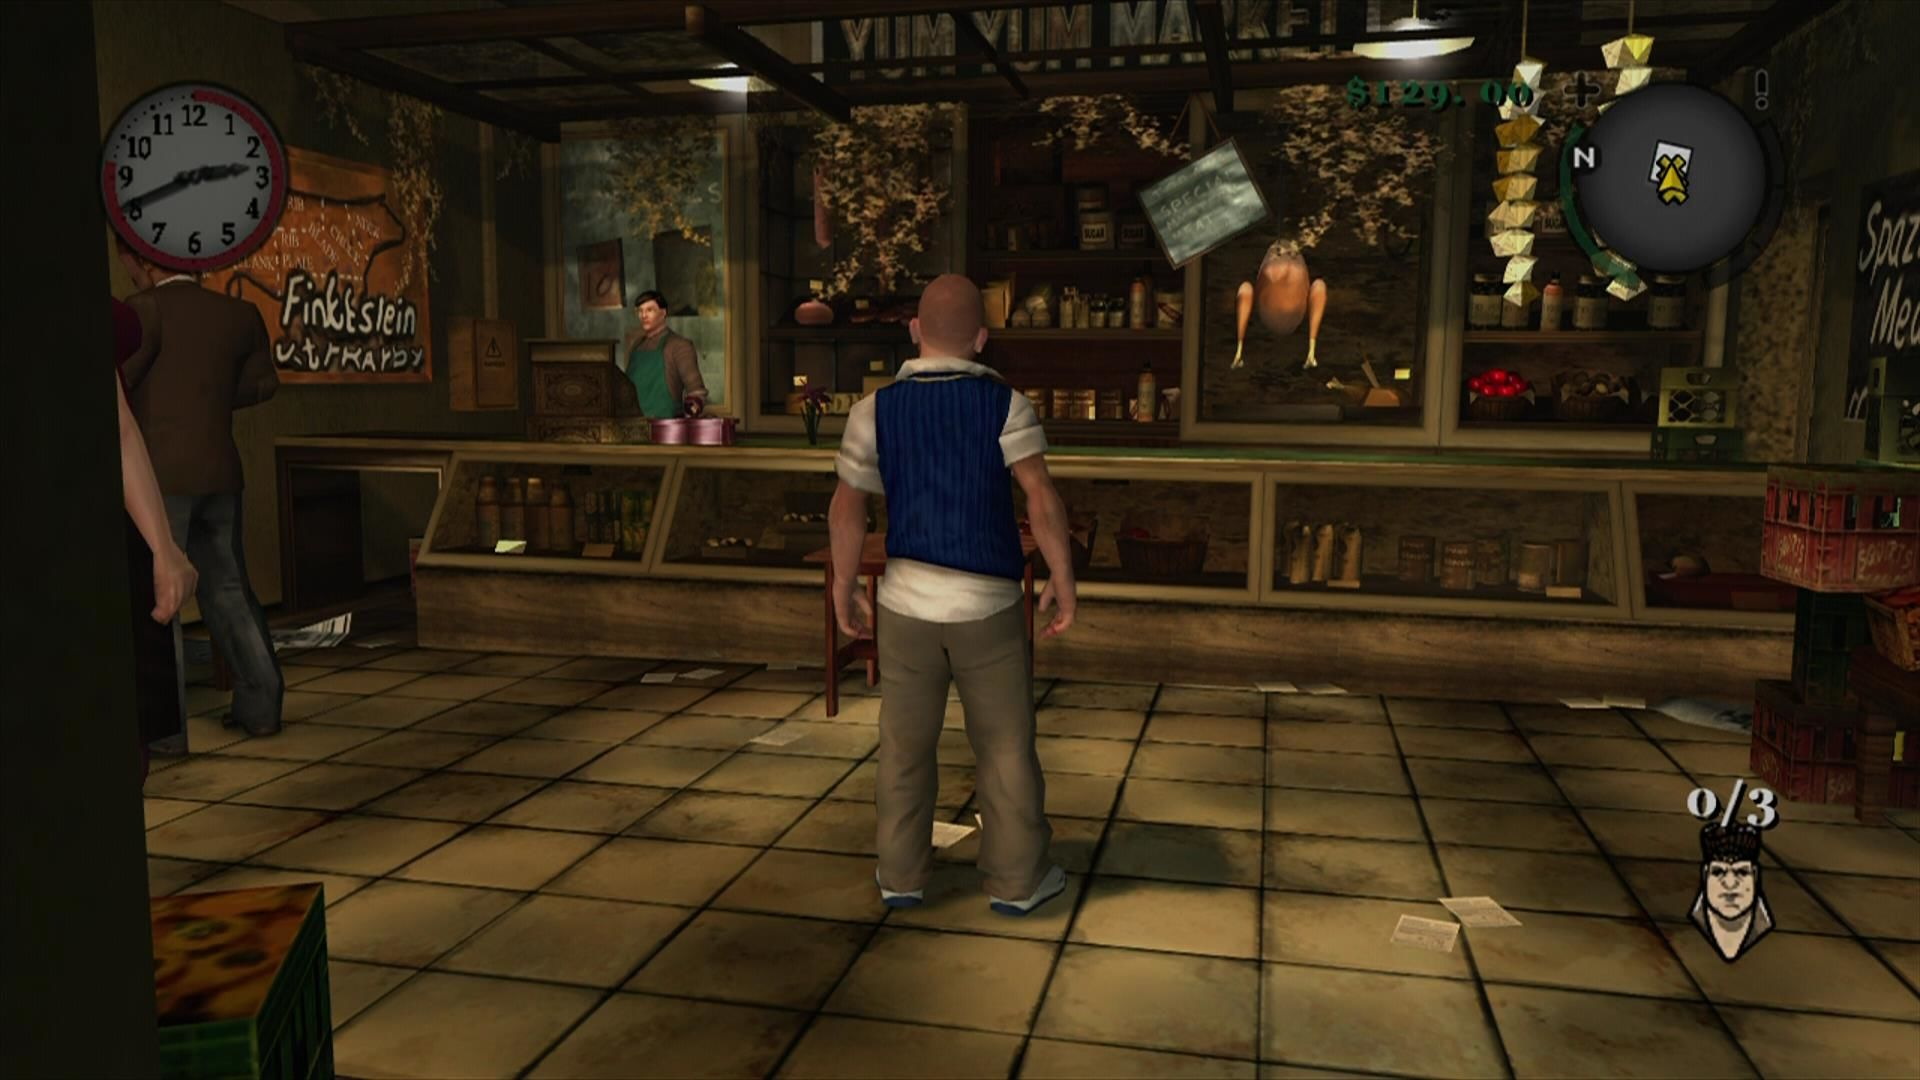 Bully: Scholarship Edition Xbox 360 Your local Yum Yum market.